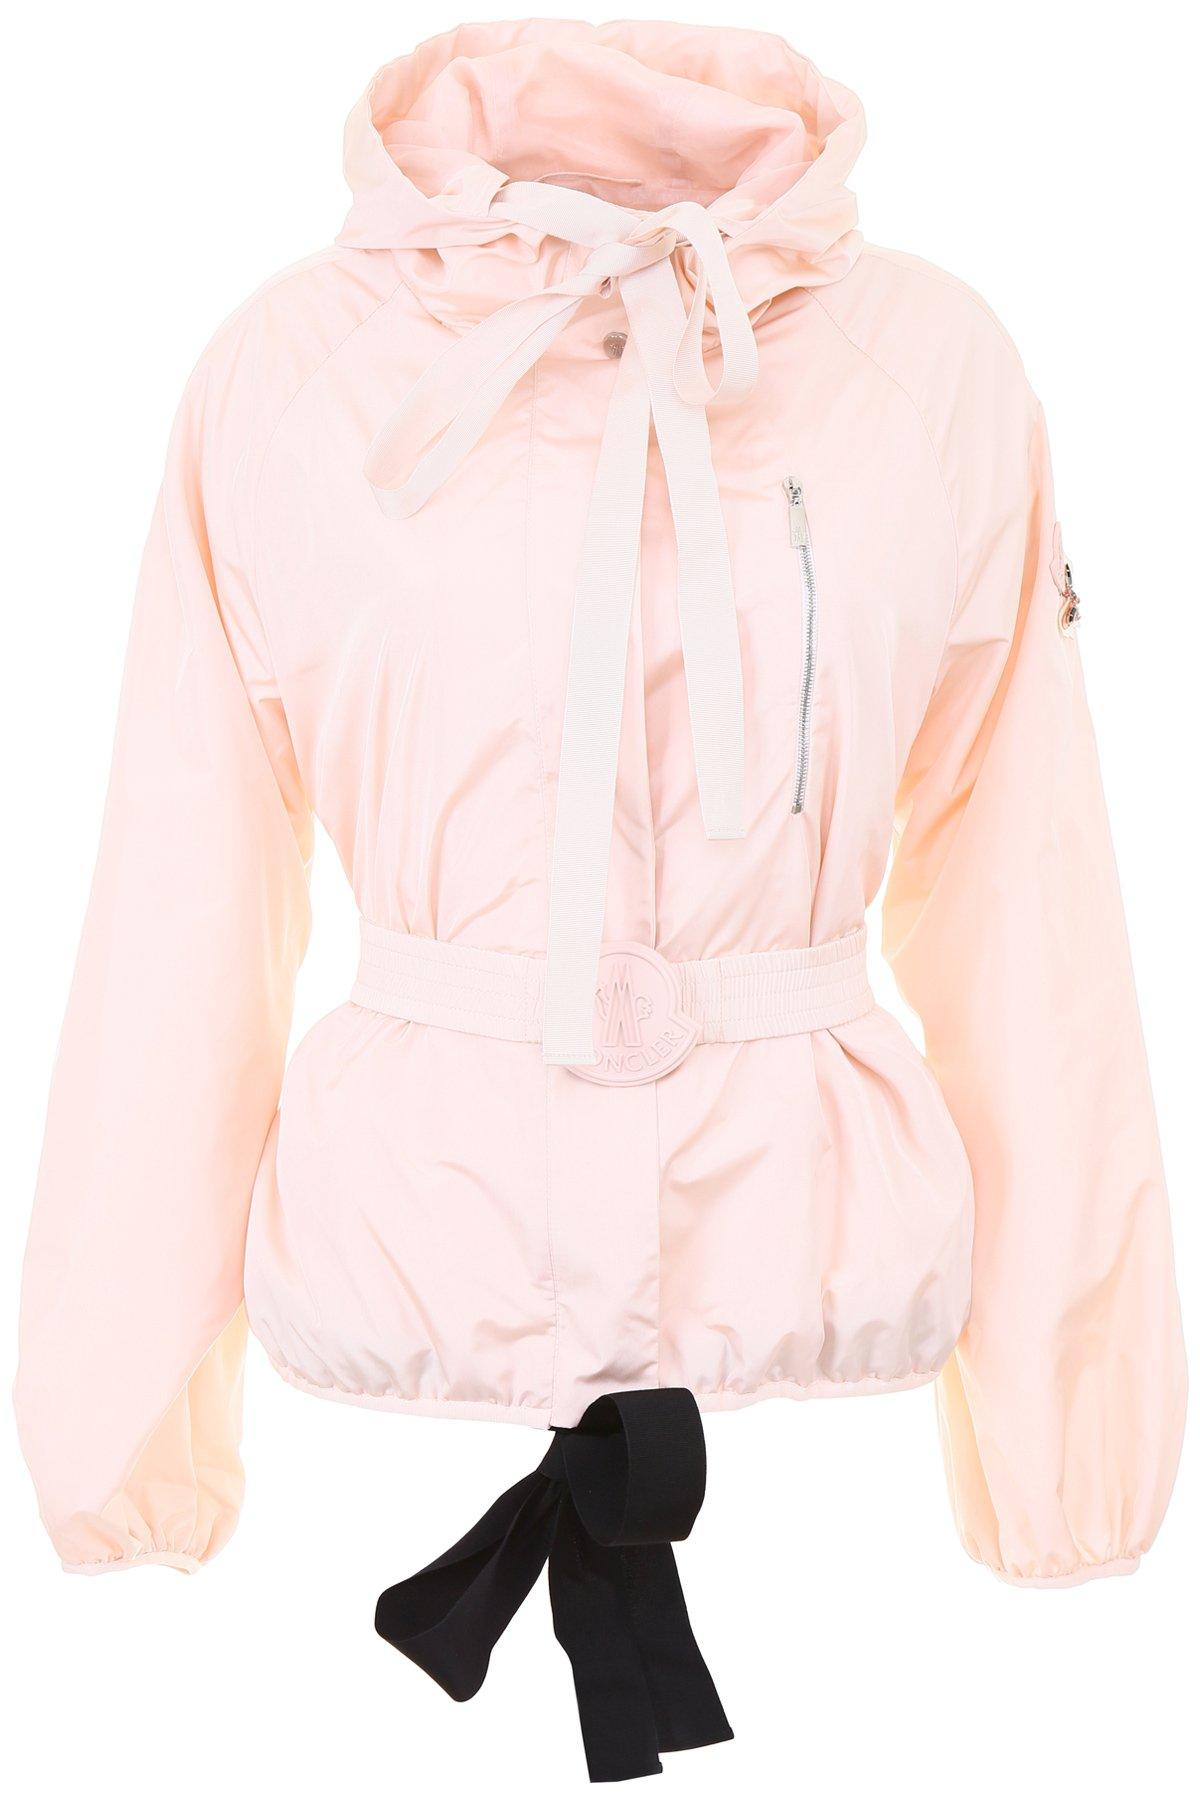 007a51bac187 Moncler Gamme Rouge Belted Jacket in Pink - Save 54% - Lyst